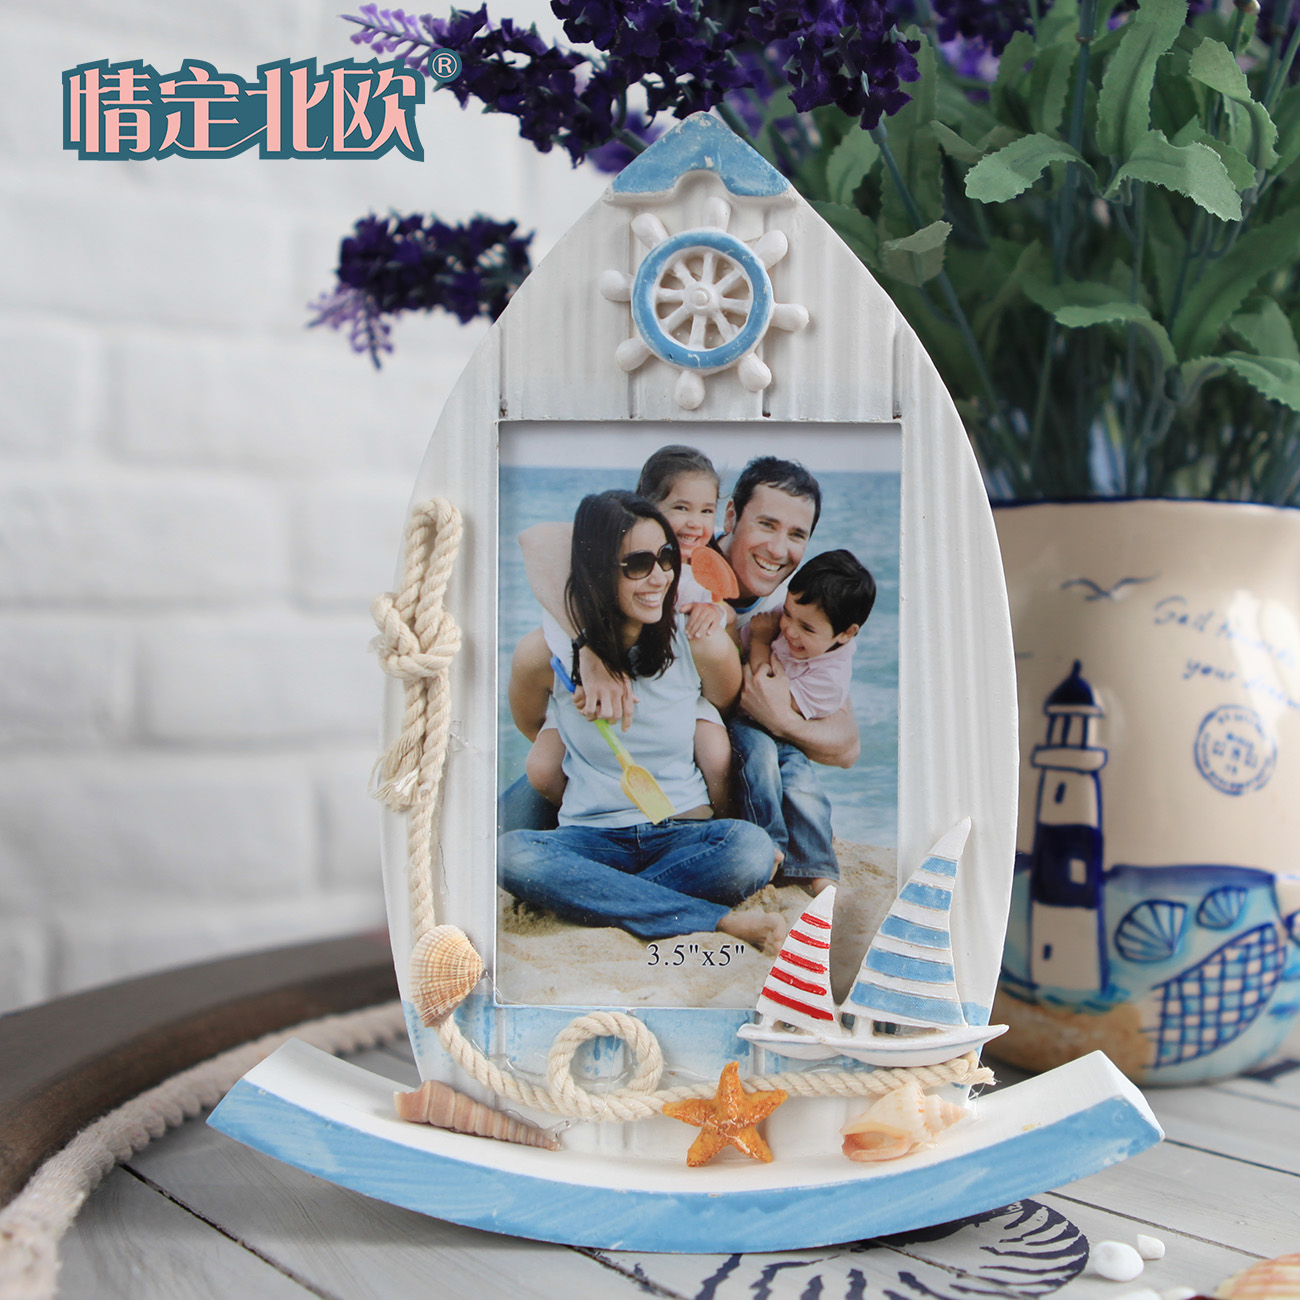 Helmsman sailing the mediterranean style decorative frame swing wooden rocker frame